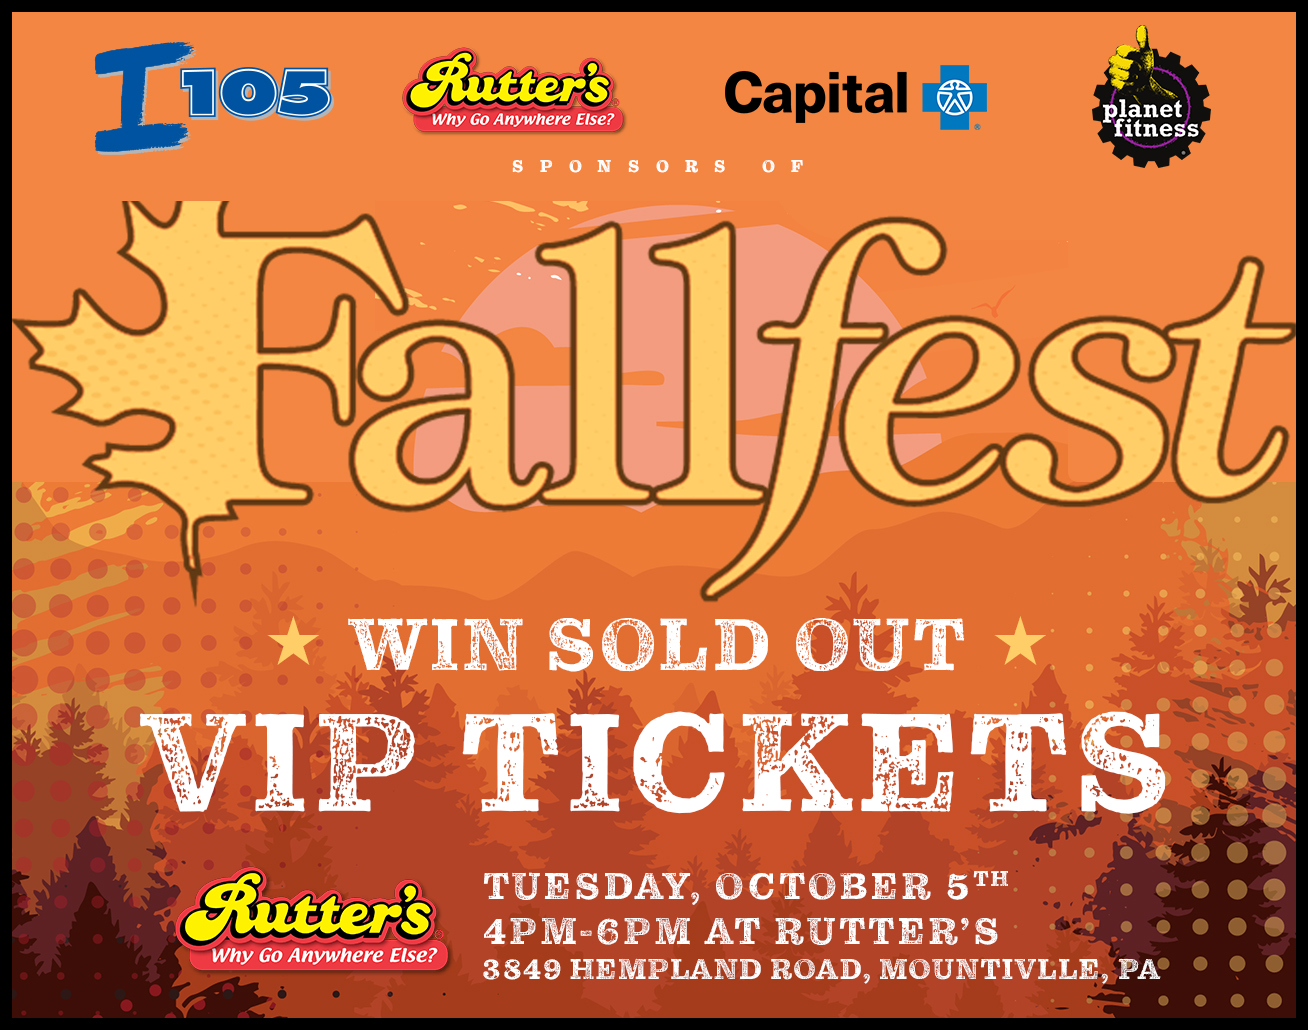 Celebrate 10/5 day and WIN Fallfest VIP Tickets from I-105 and Rutter's